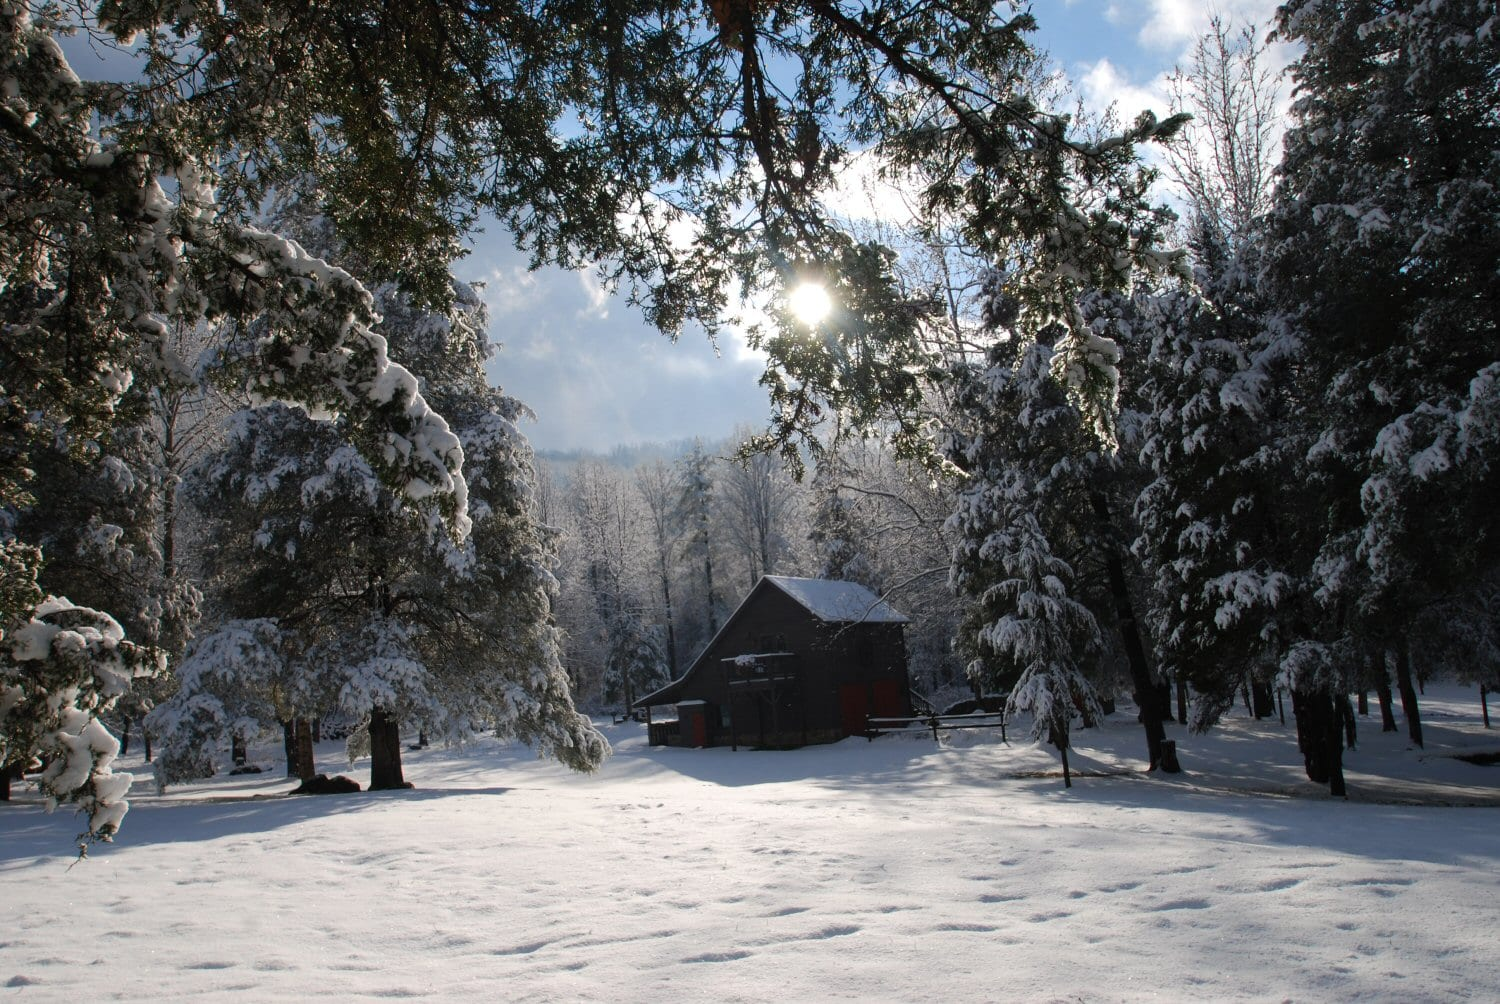 Winter Getaways in the Shenandoah Valley